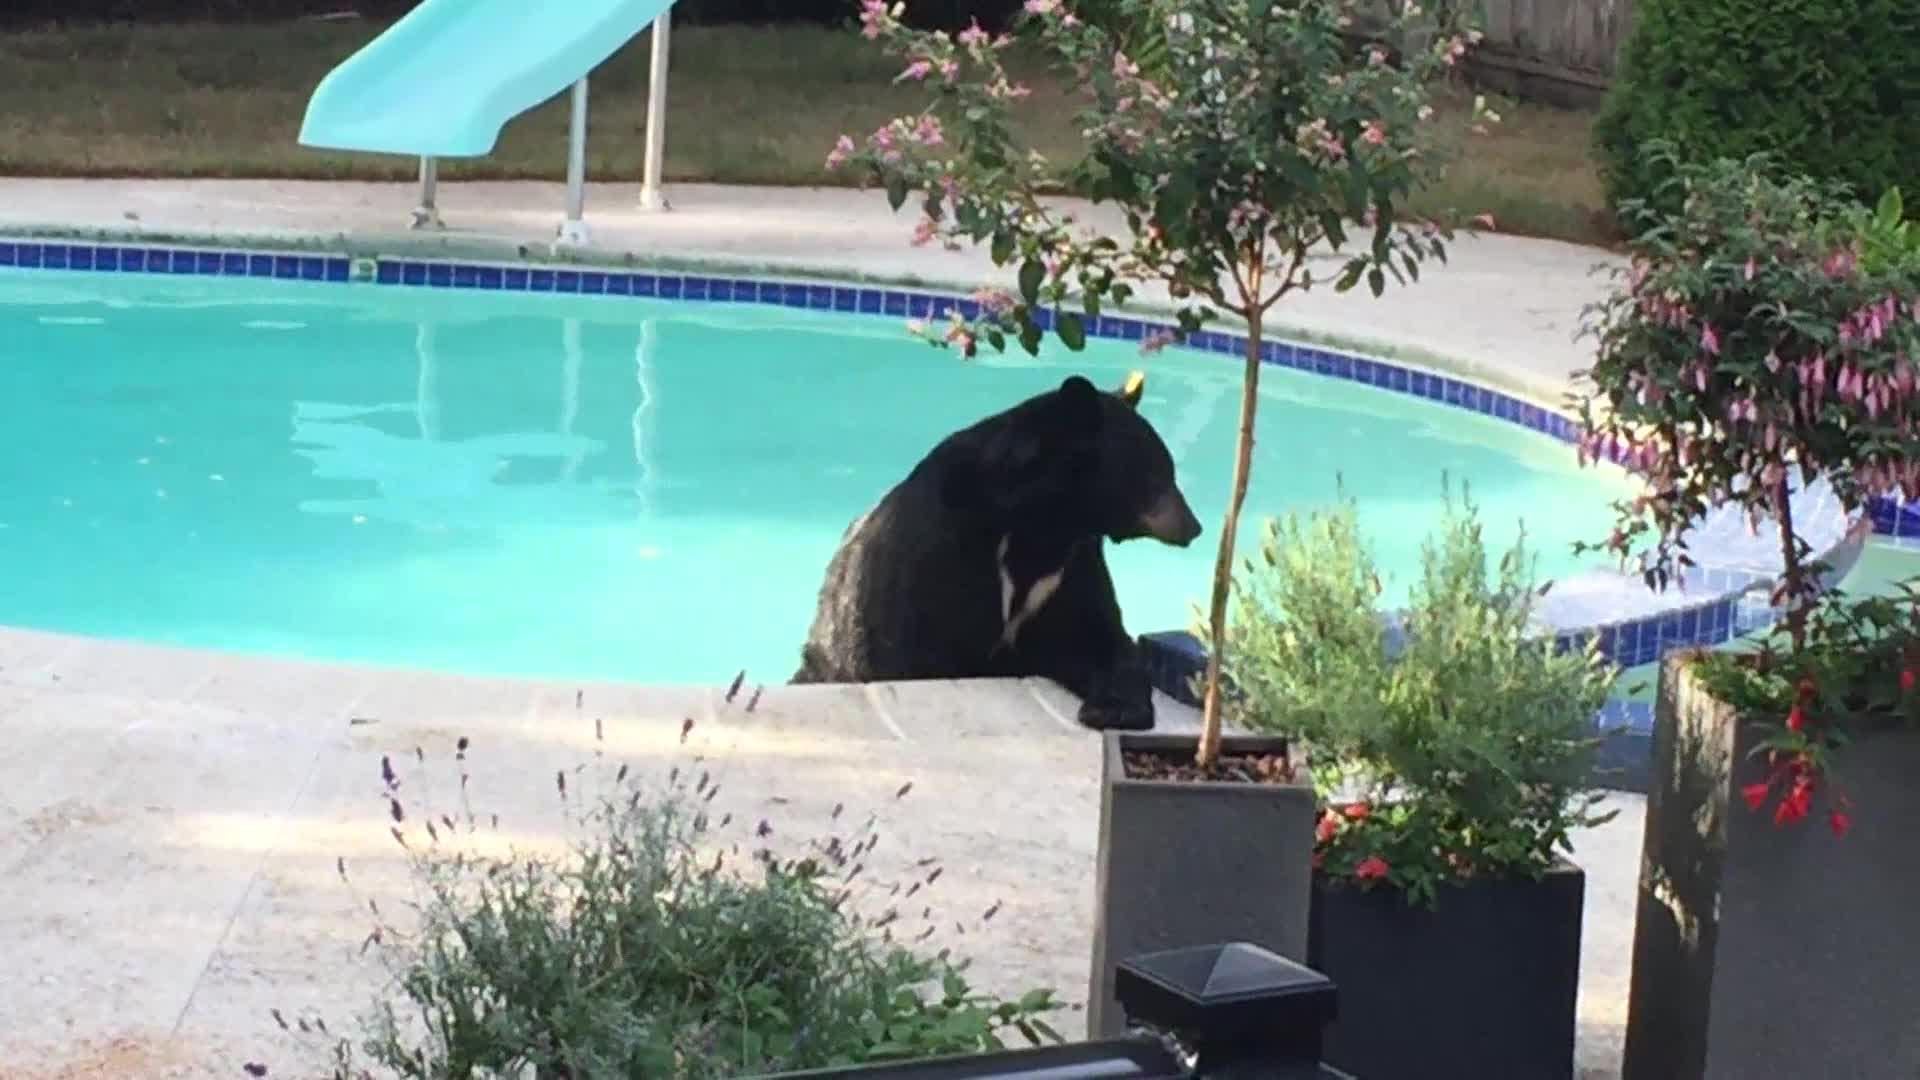 Bear swimming in backyard pool backyard design ideas for Bears in swimming pool new jersey